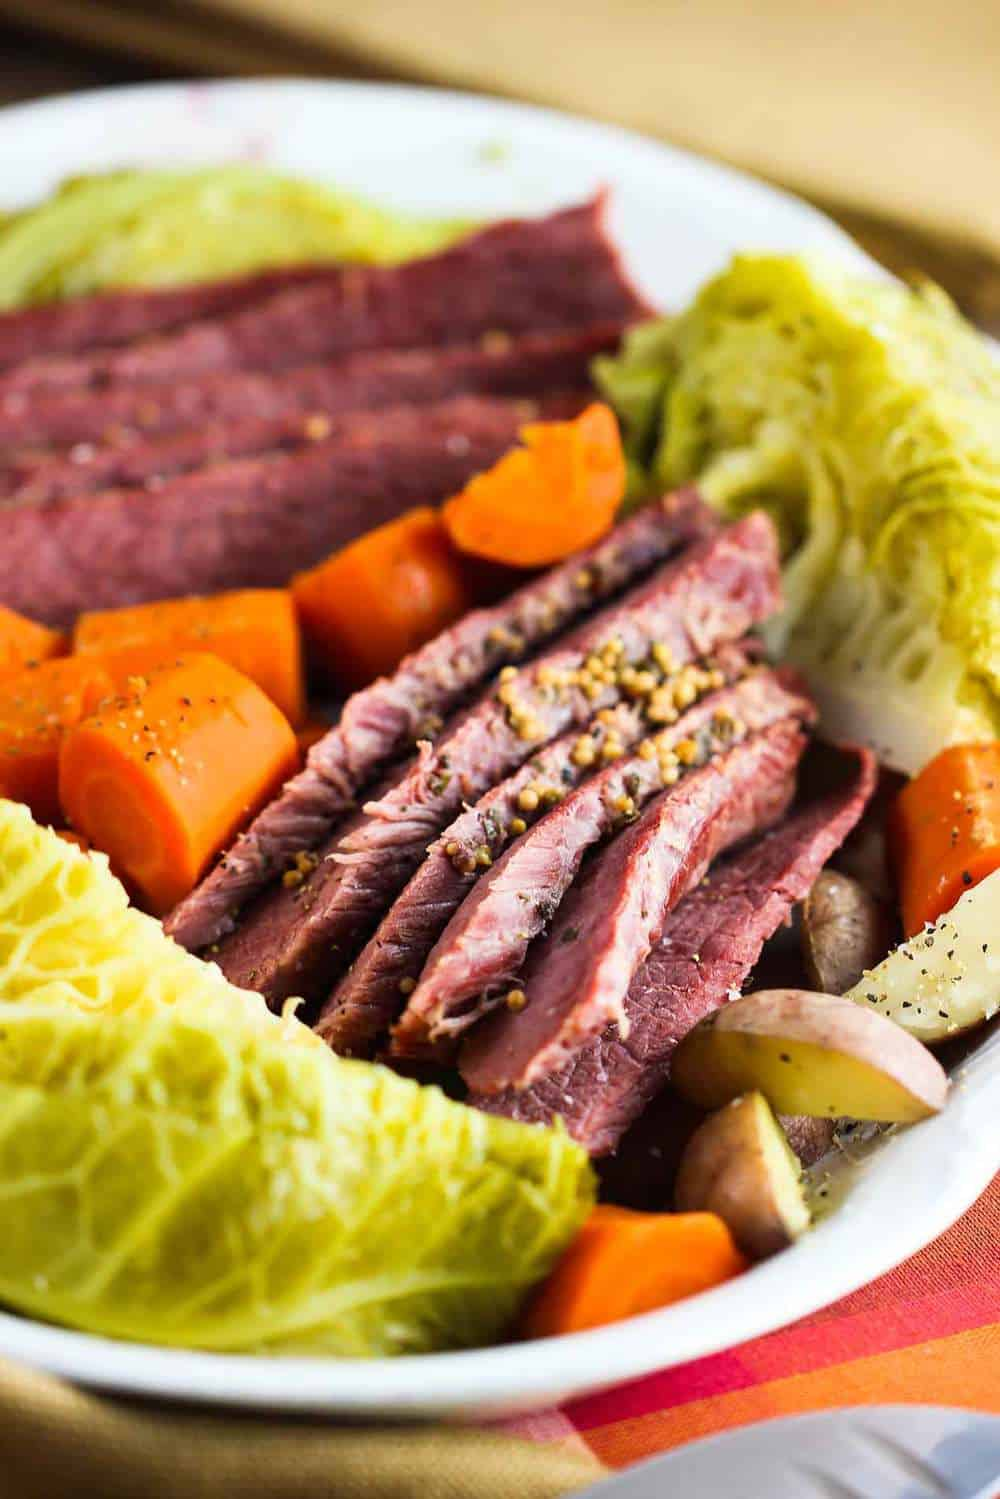 Corned Beef with Cabbage recipe